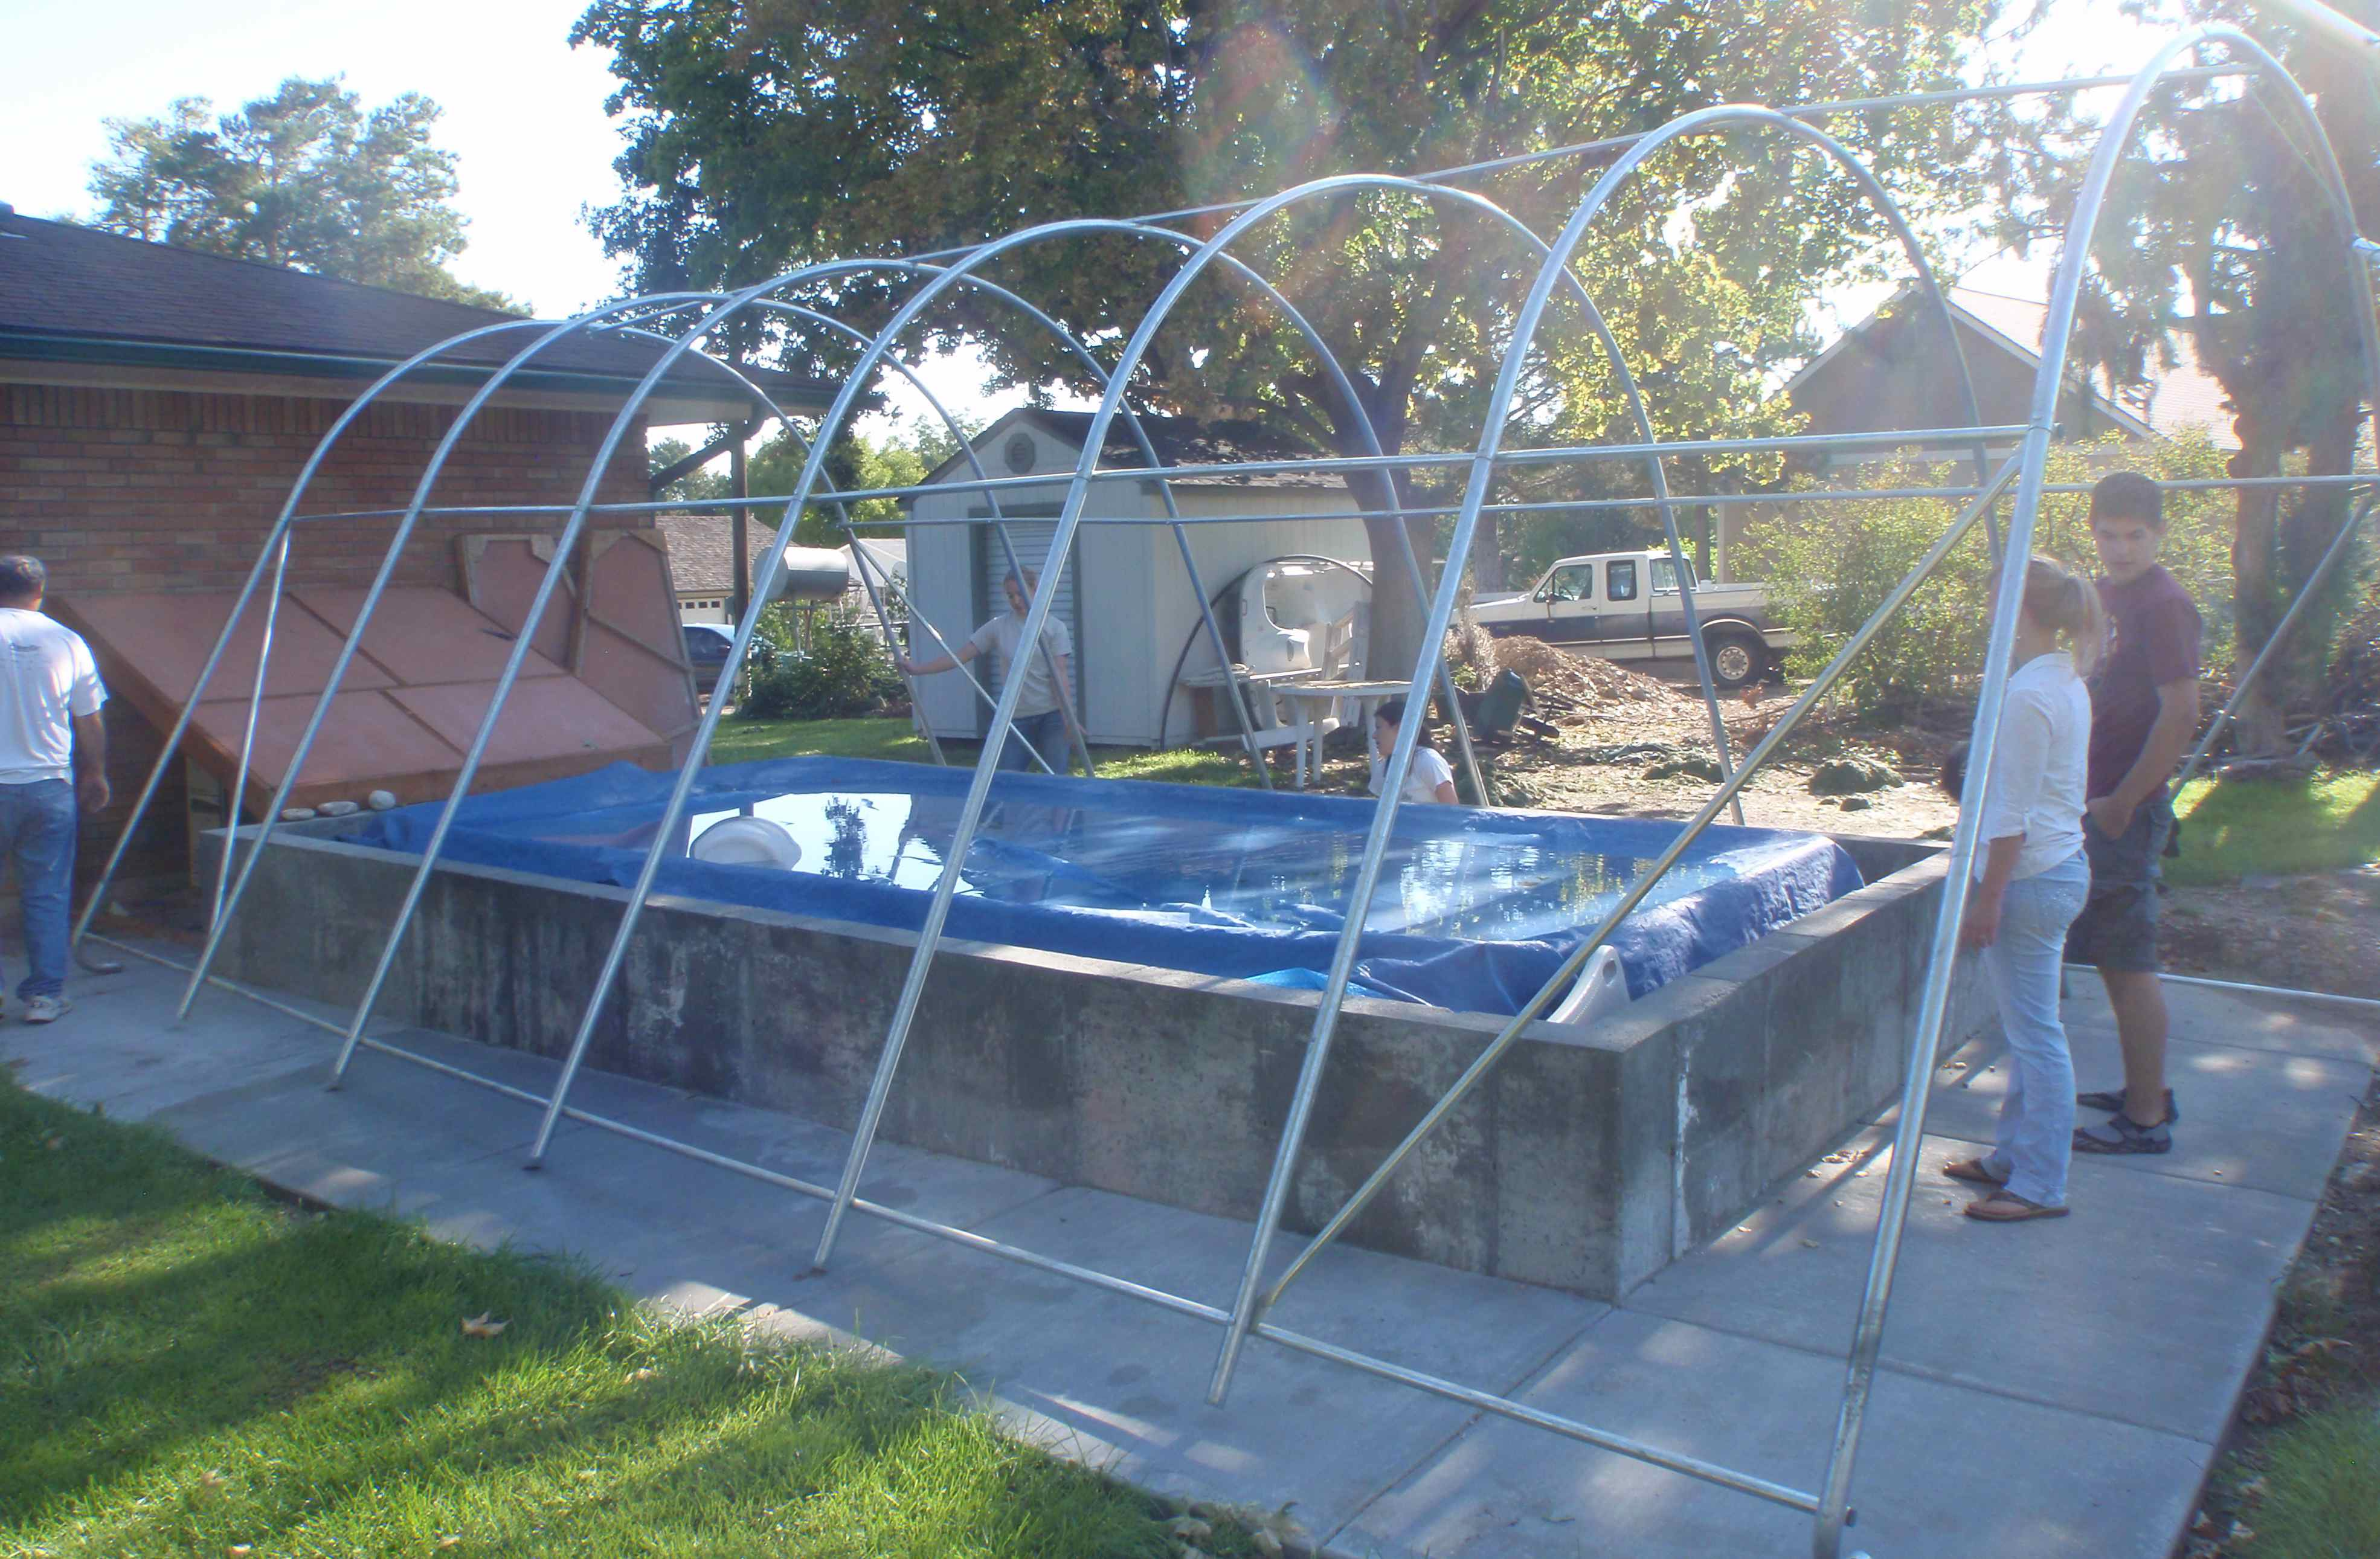 The Frame Of Our Portable Instant Garage Now Swimming Pool Cover Has Just Been